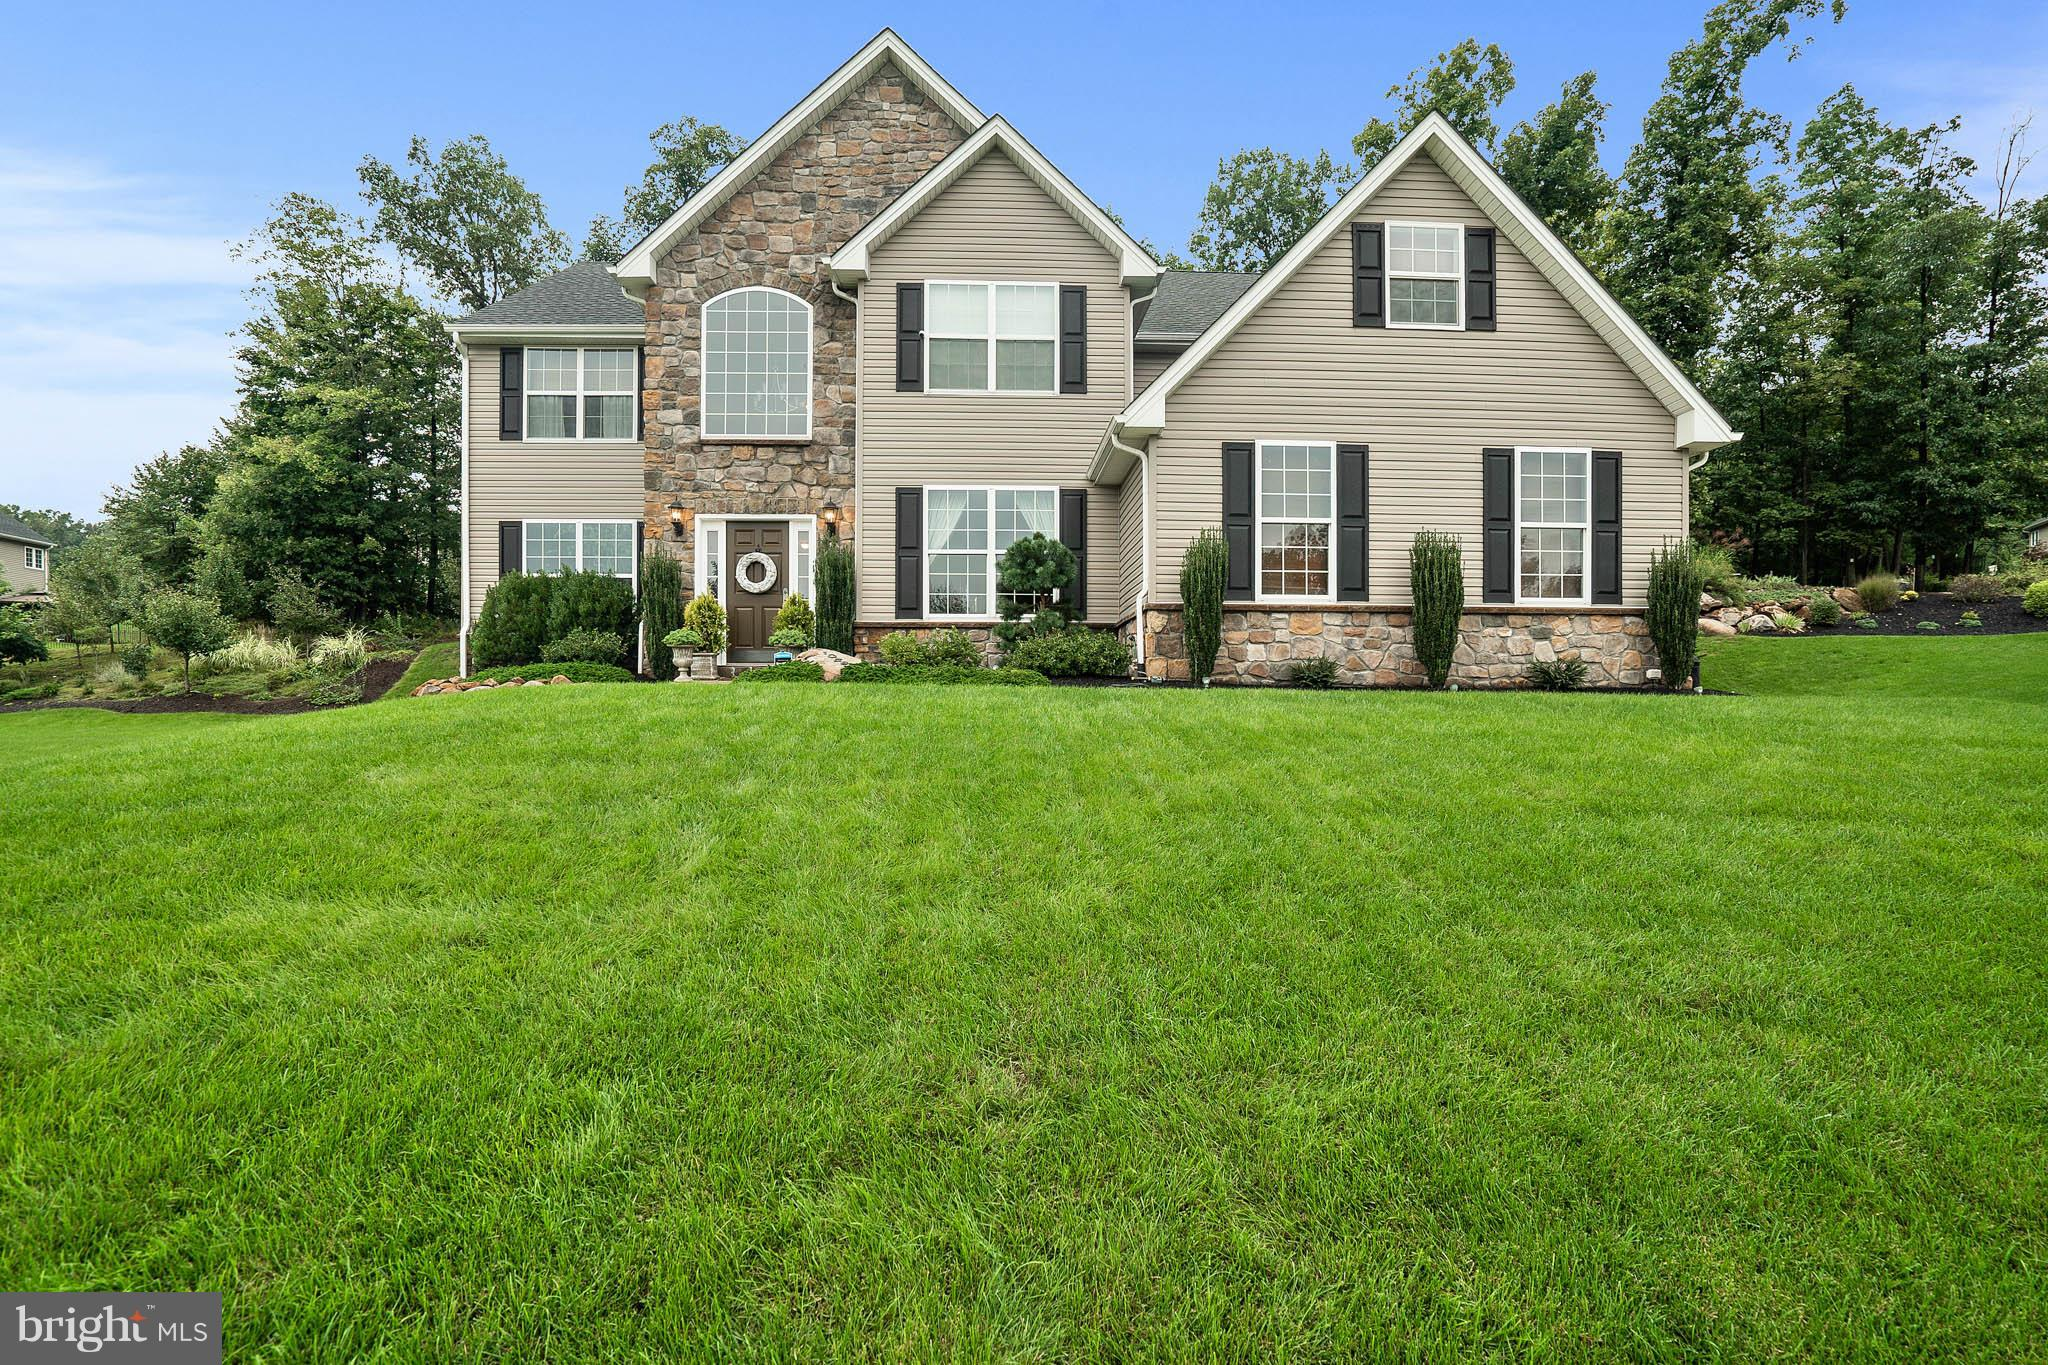 1039 VICTOR DRIVE, EAST GREENVILLE, PA 18041